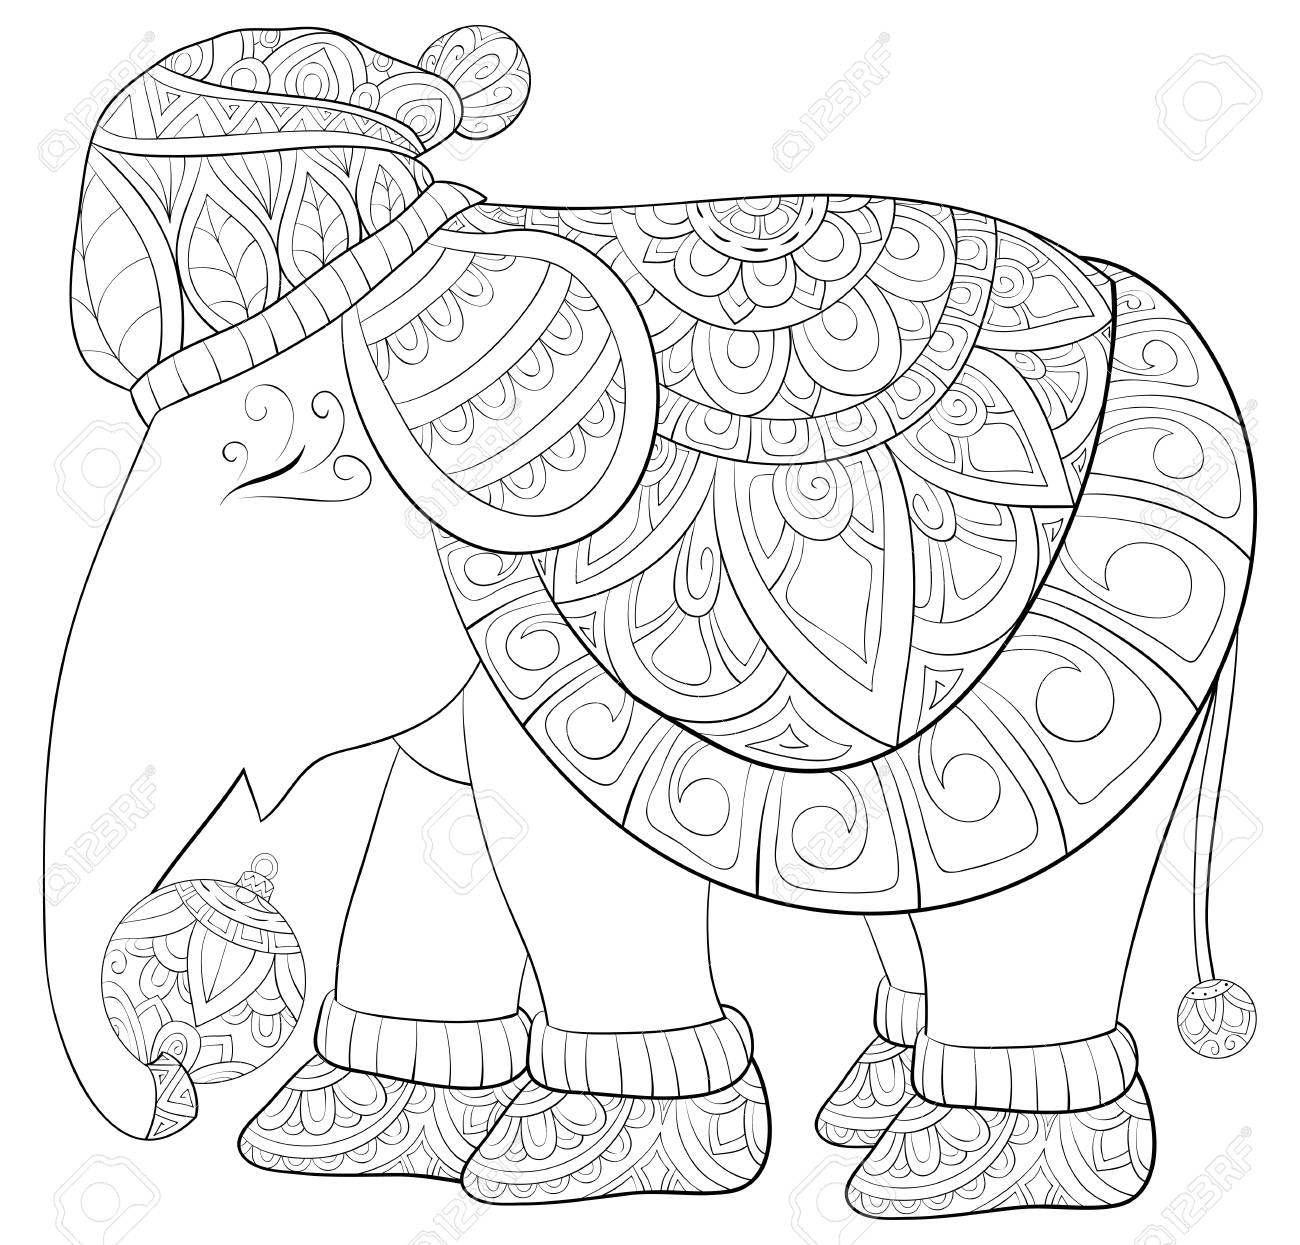 Christmas Boots Drawing.A Cute Elephant Wearing A Christmas Cap And Boots With Decoration